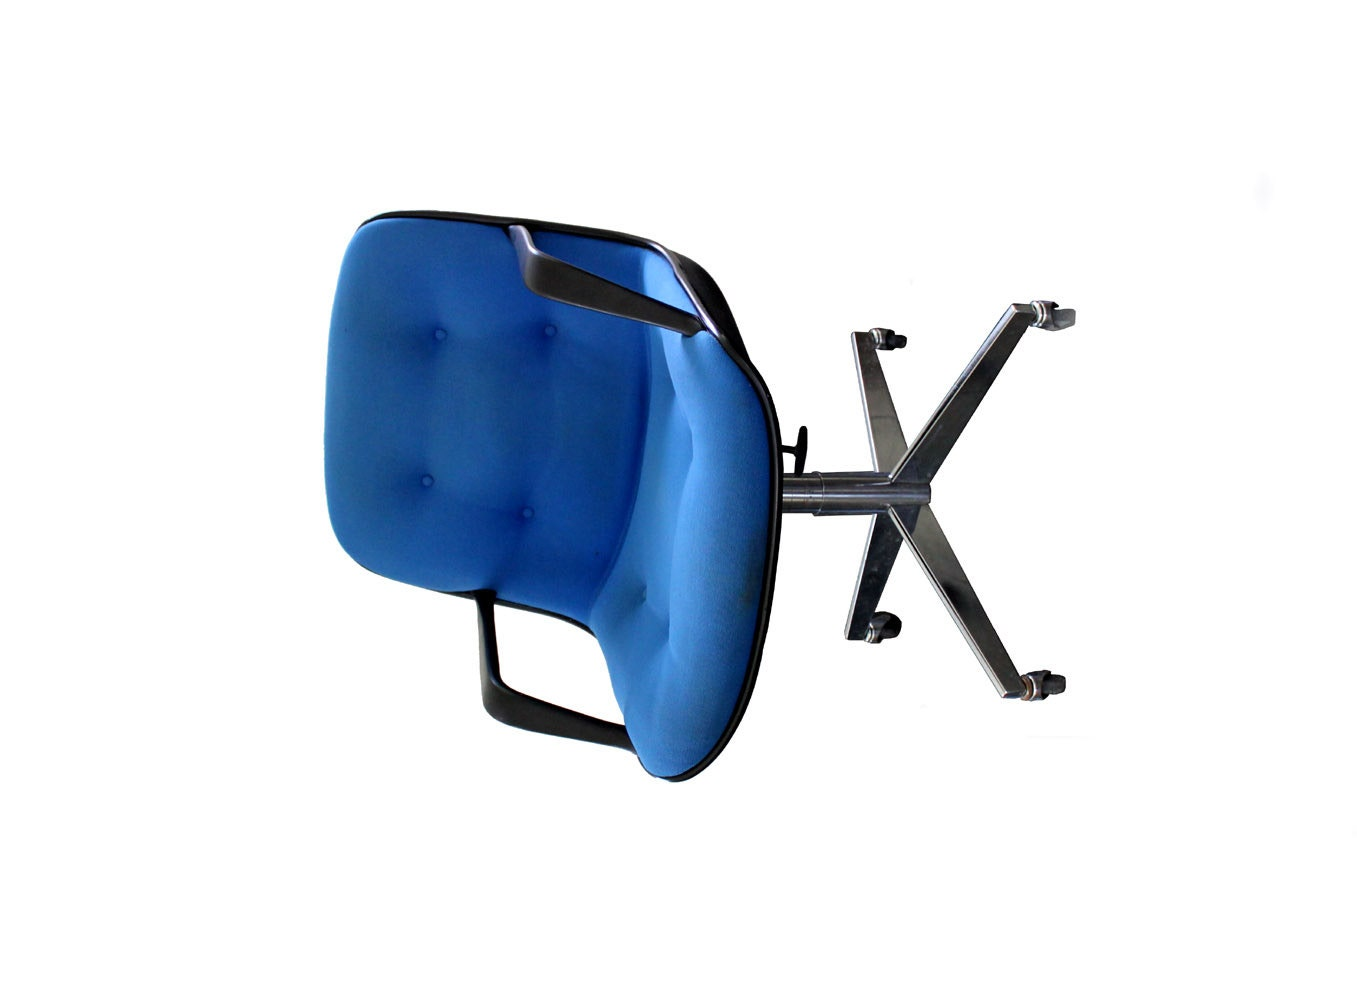 Vintage Blue Steelcase 451 Rolling fice Chair